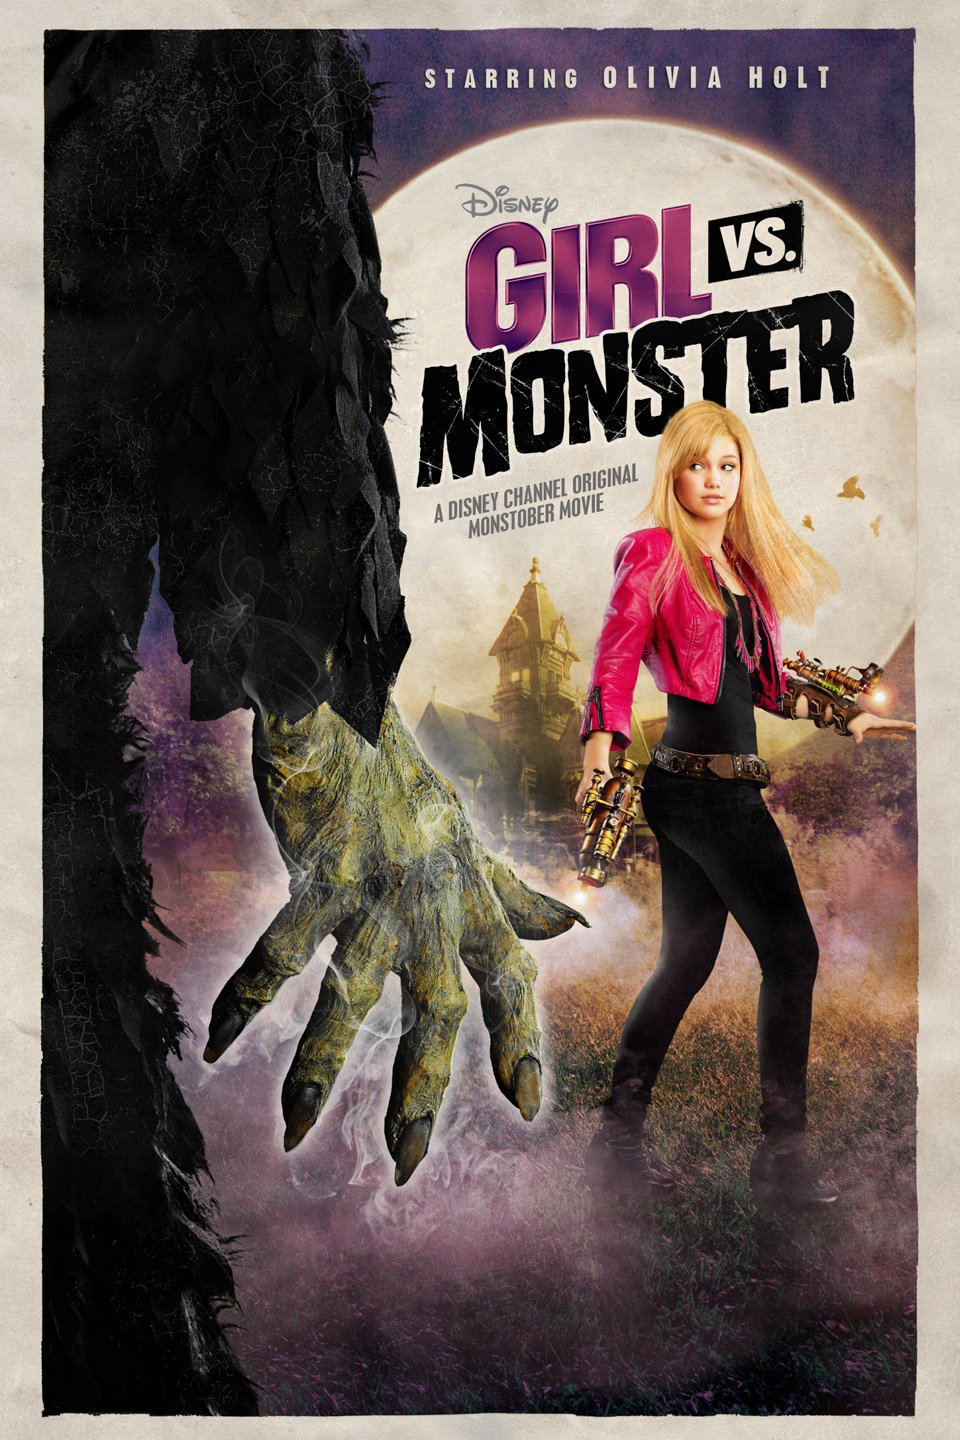 Girl Vs Monster 2012 Soundeffects Wiki Fandom Powered By Wikia 12 Channel Original October